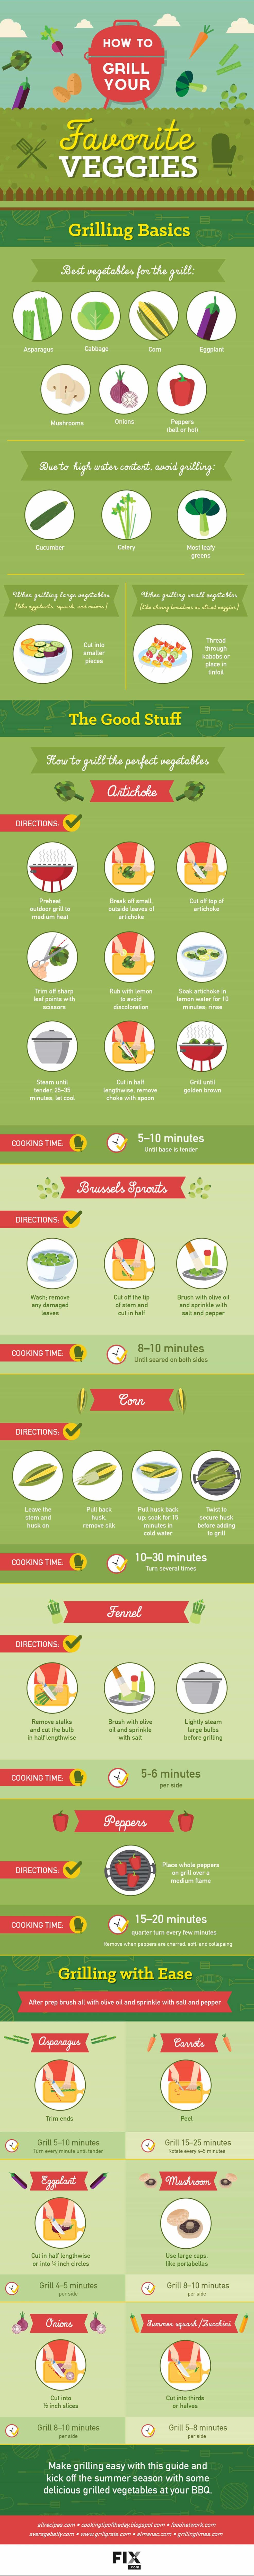 How to Grill your favorite vegetables - tips for cooking vegetables on the grill